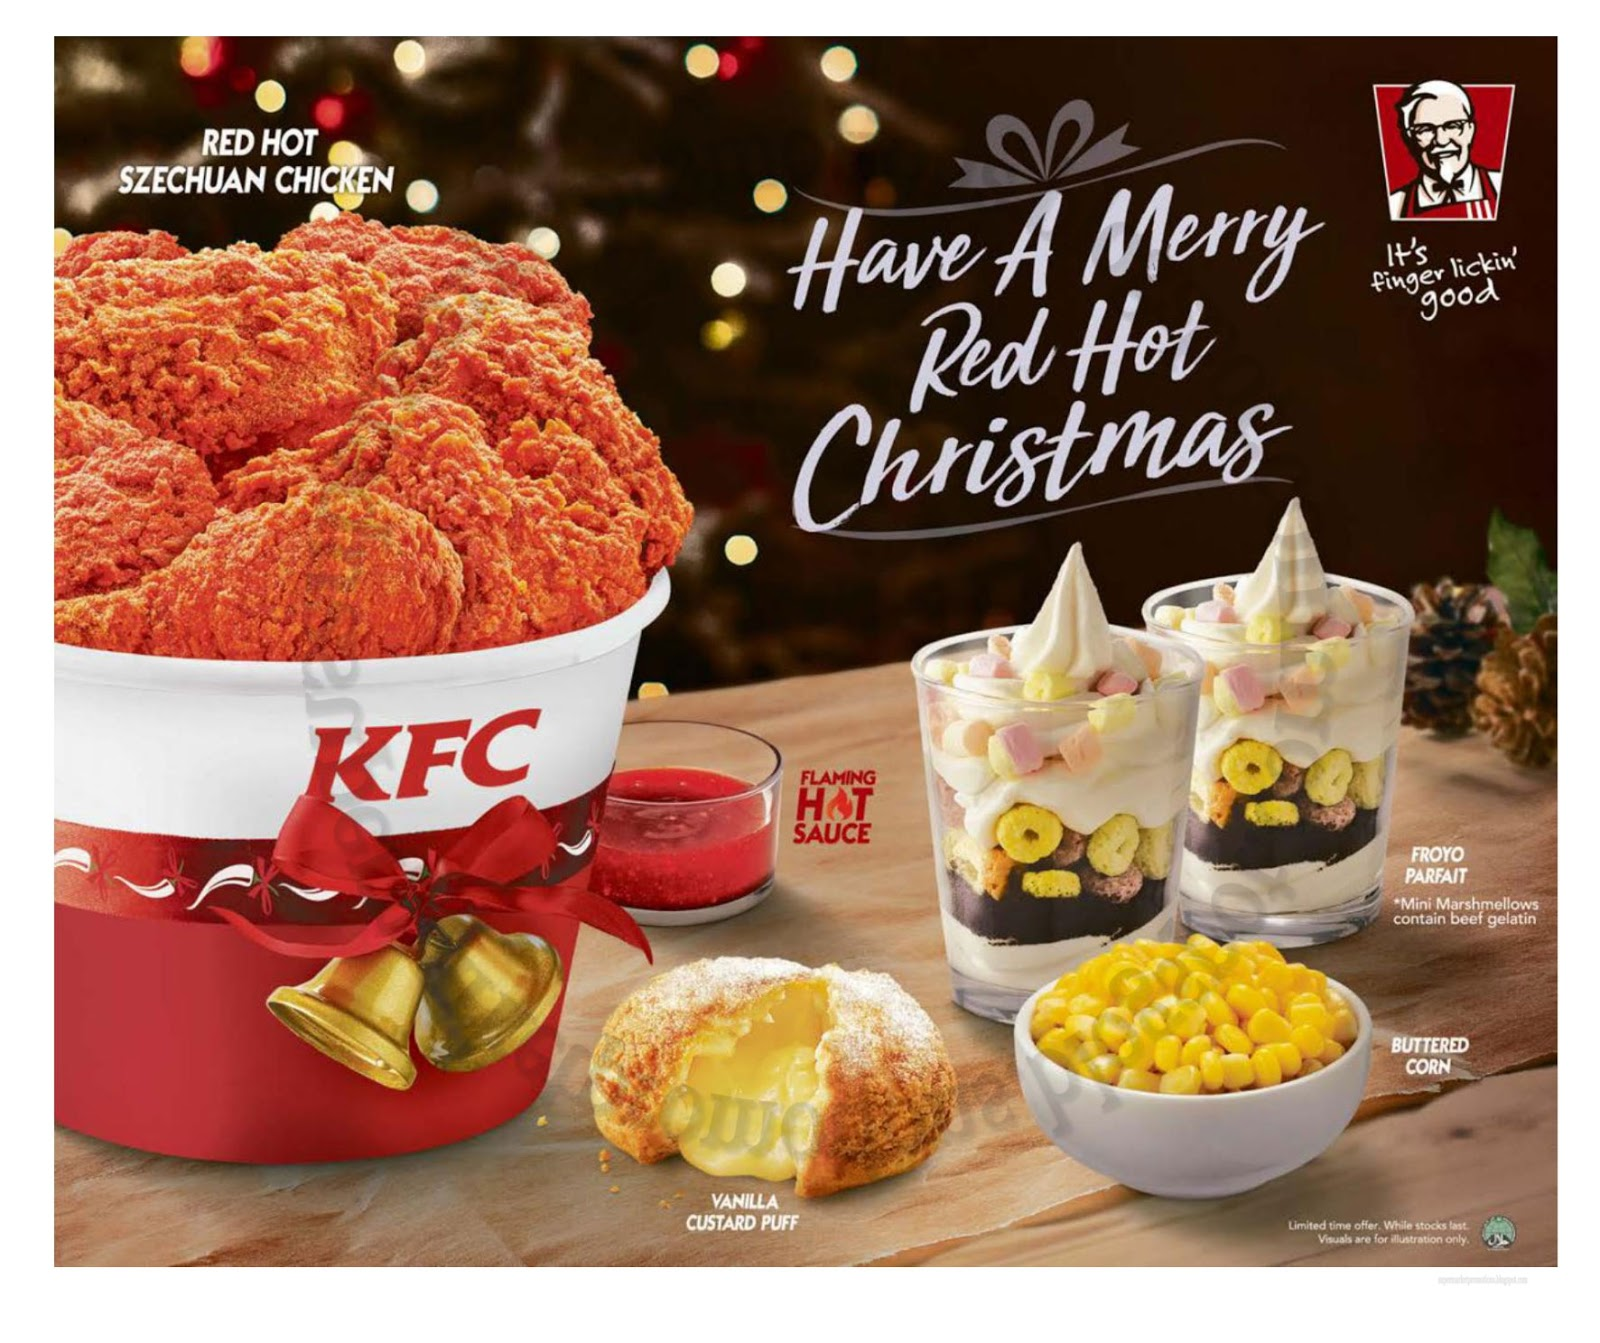 KFC Merry Red Hot Christmas 25 December 2017 ~ Supermarket Promotions